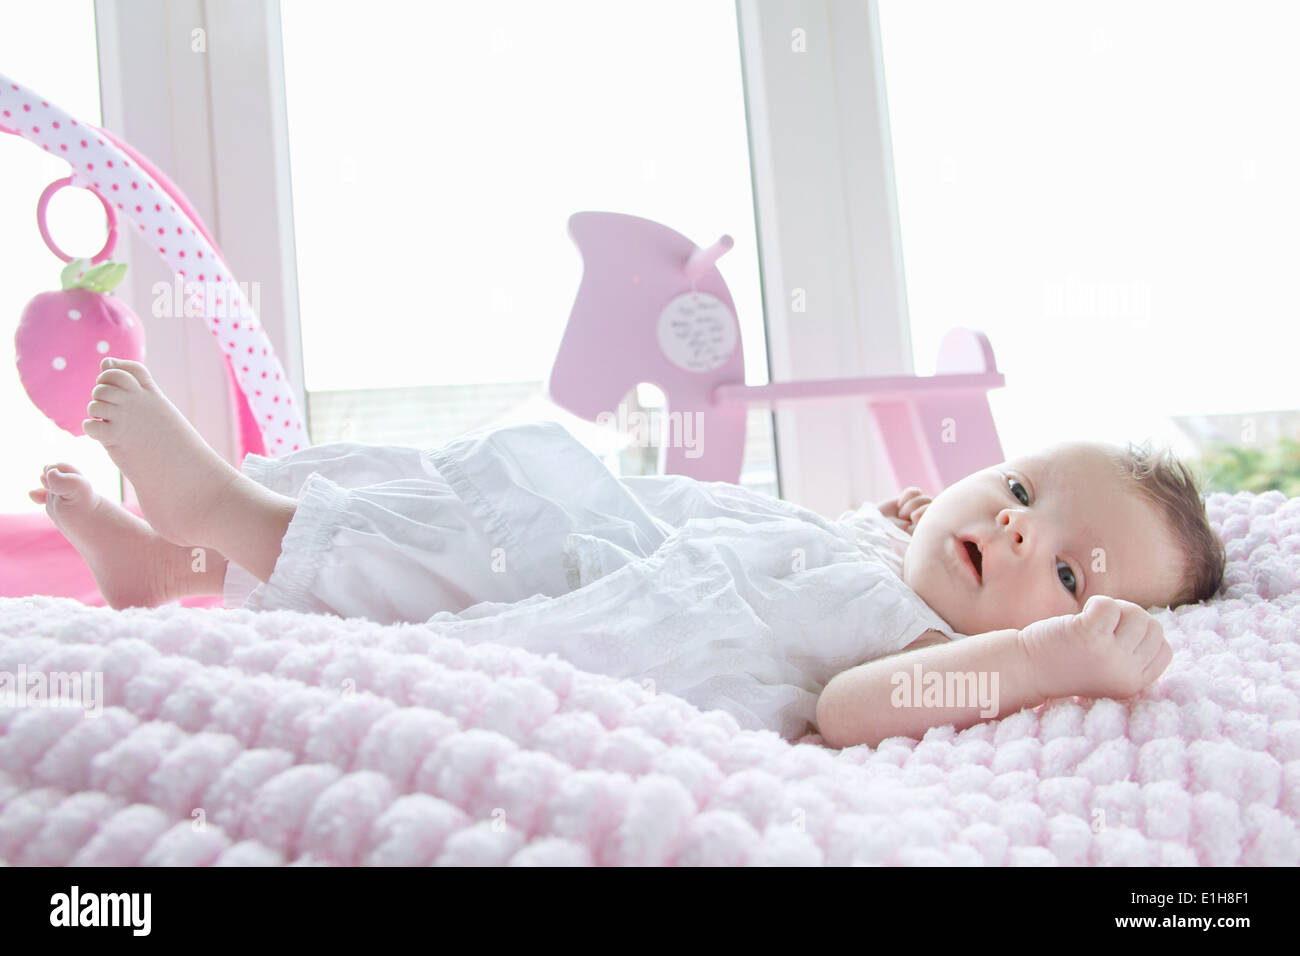 Baby Girl Lying in Bed Photo Stock